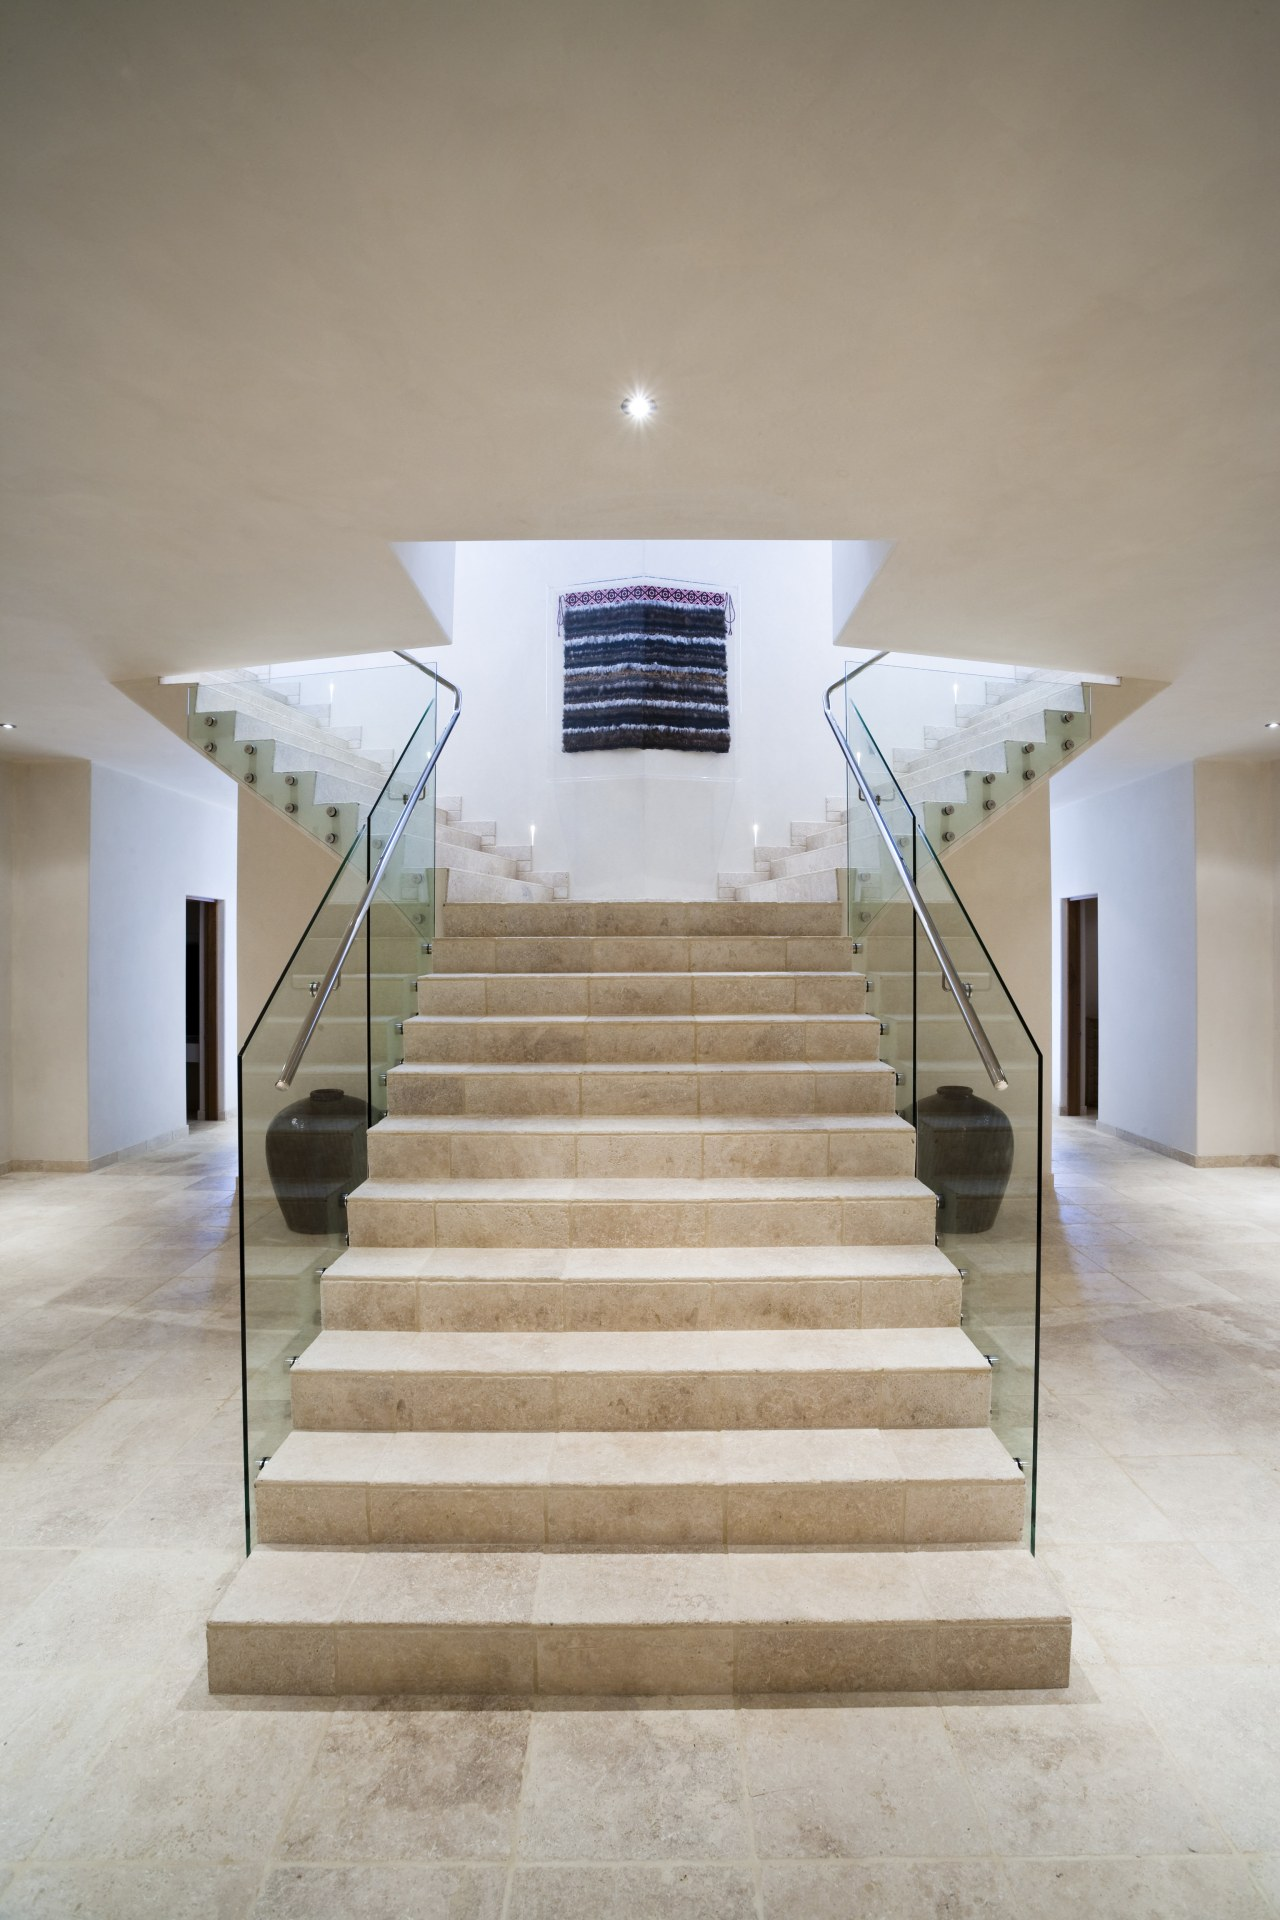 Interior view of stairway at Mediterranean styled home architecture, ceiling, daylighting, floor, flooring, handrail, home, house, interior design, stairs, structure, gray